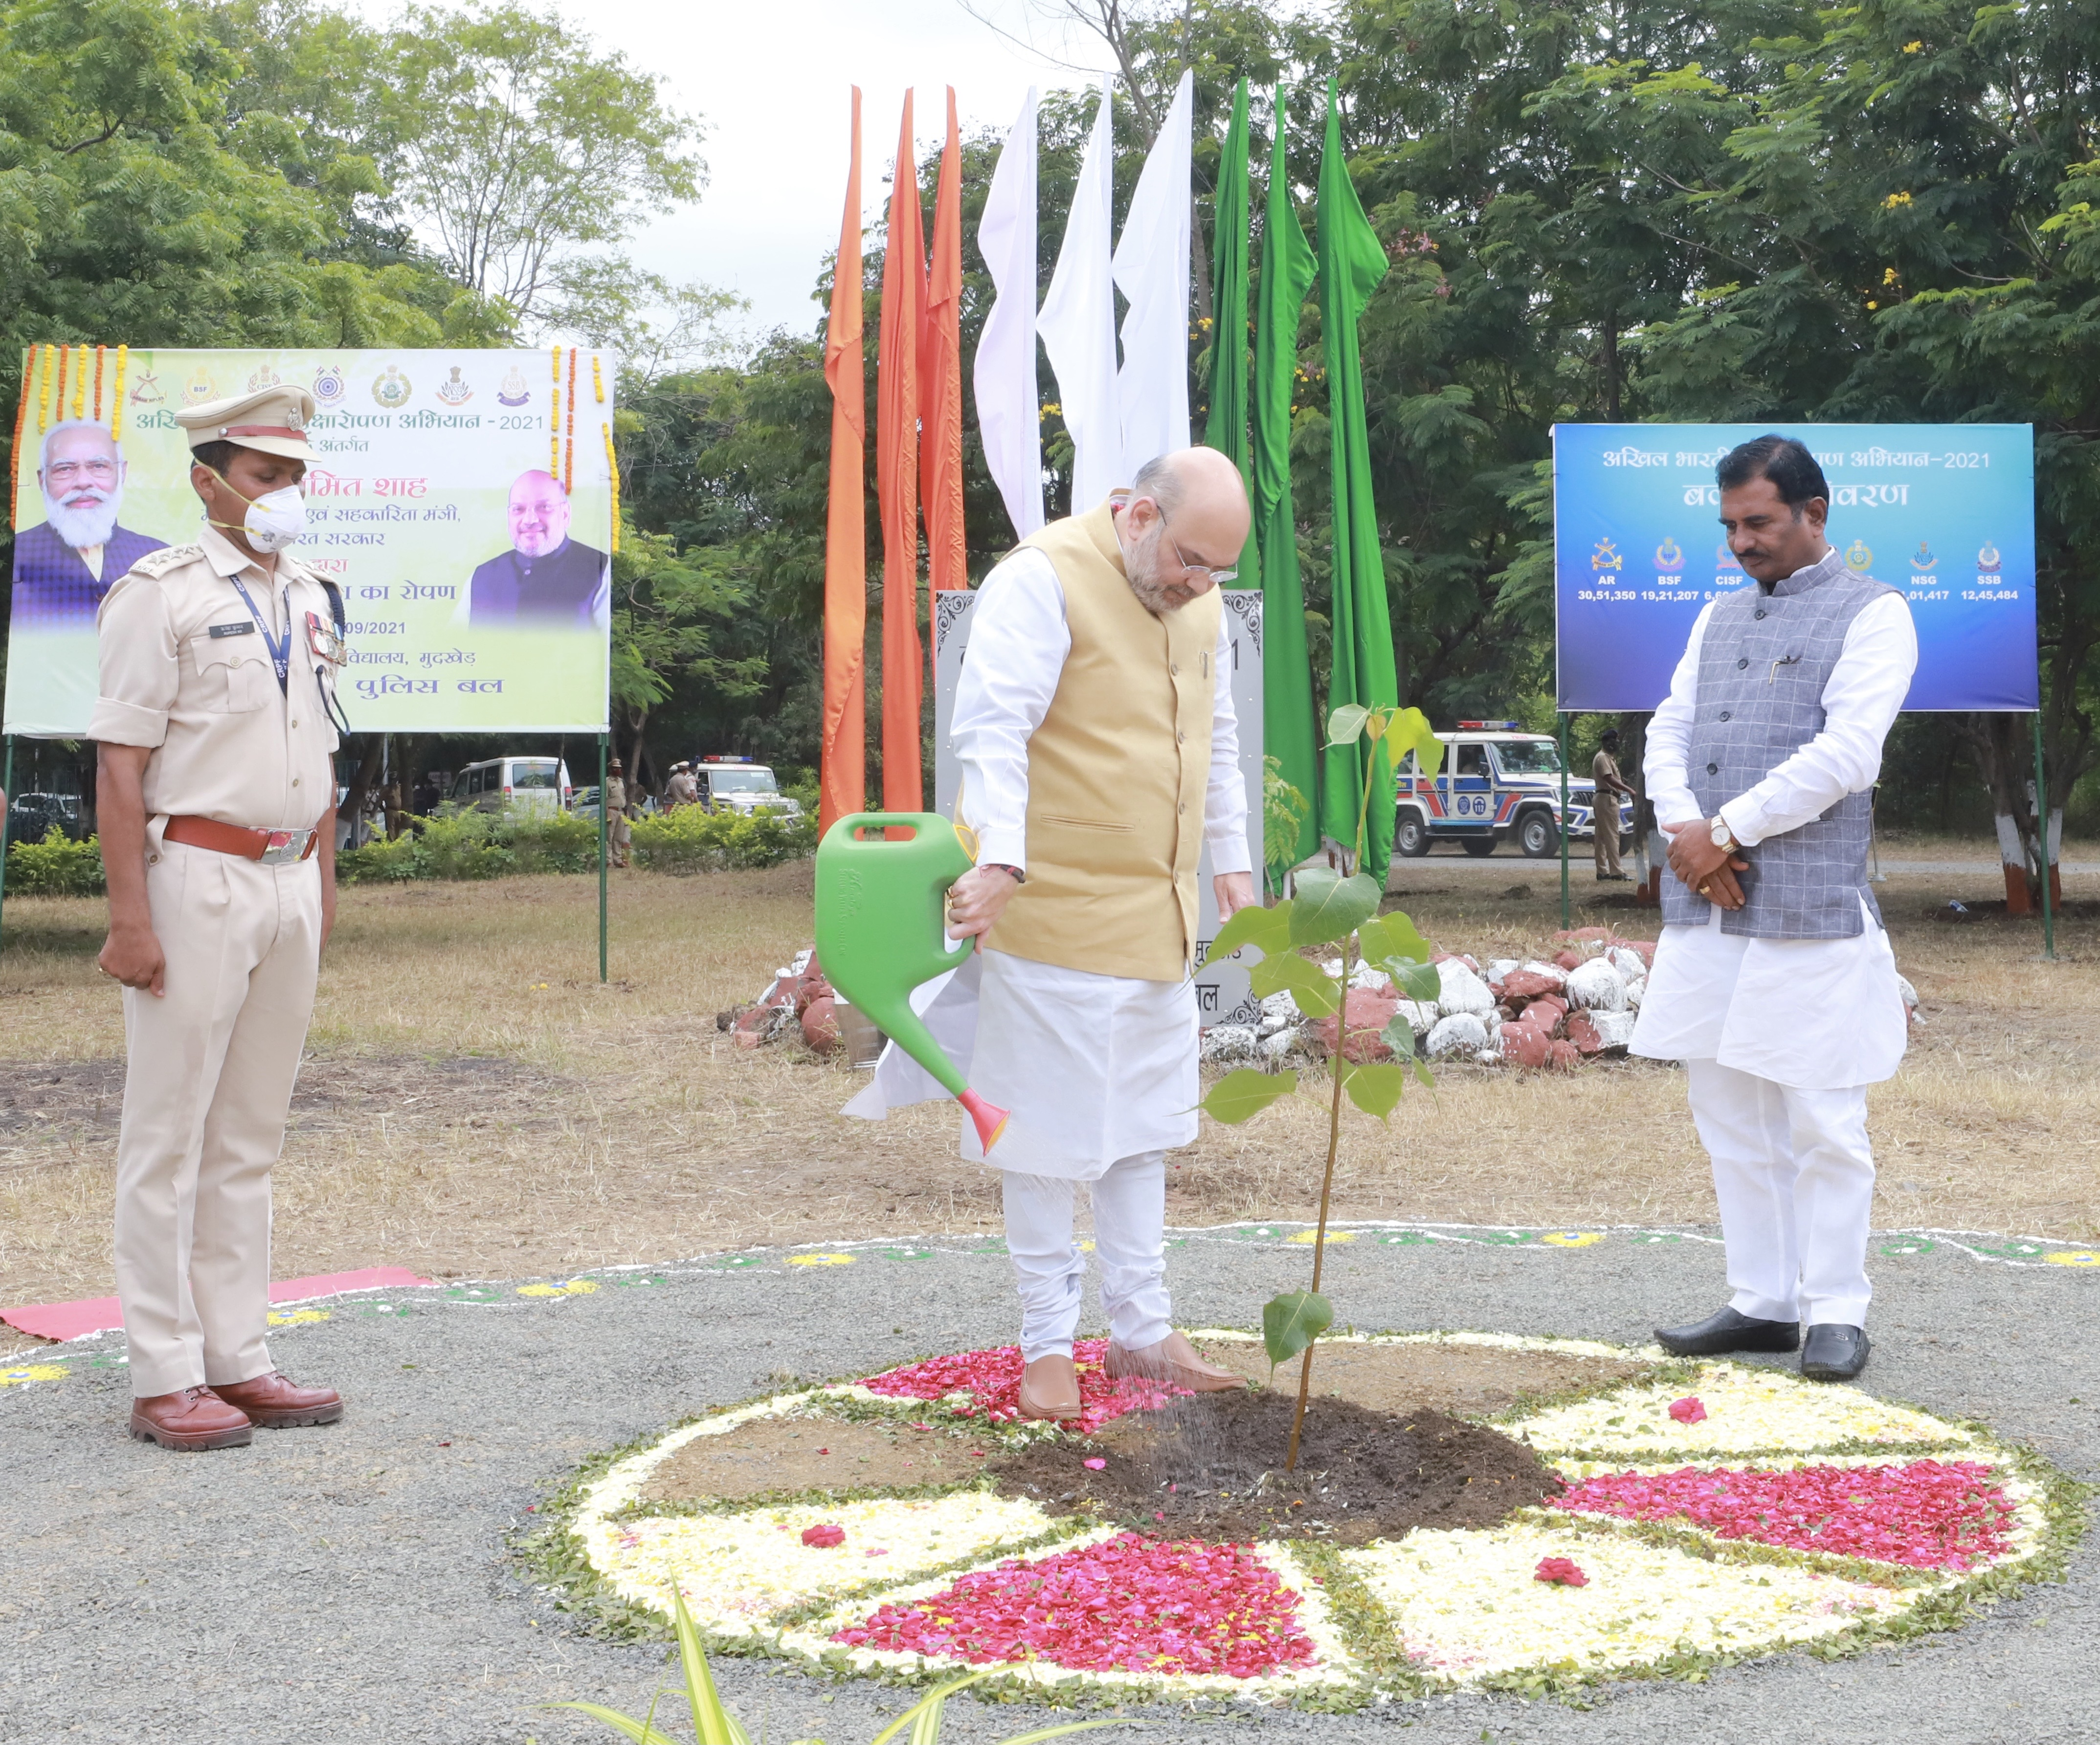 Union Minister of Home Affairs and Minister of Cooperation Shri Amit Shah planted 10 millionth sapling at CRPF Training Centre in Nanded